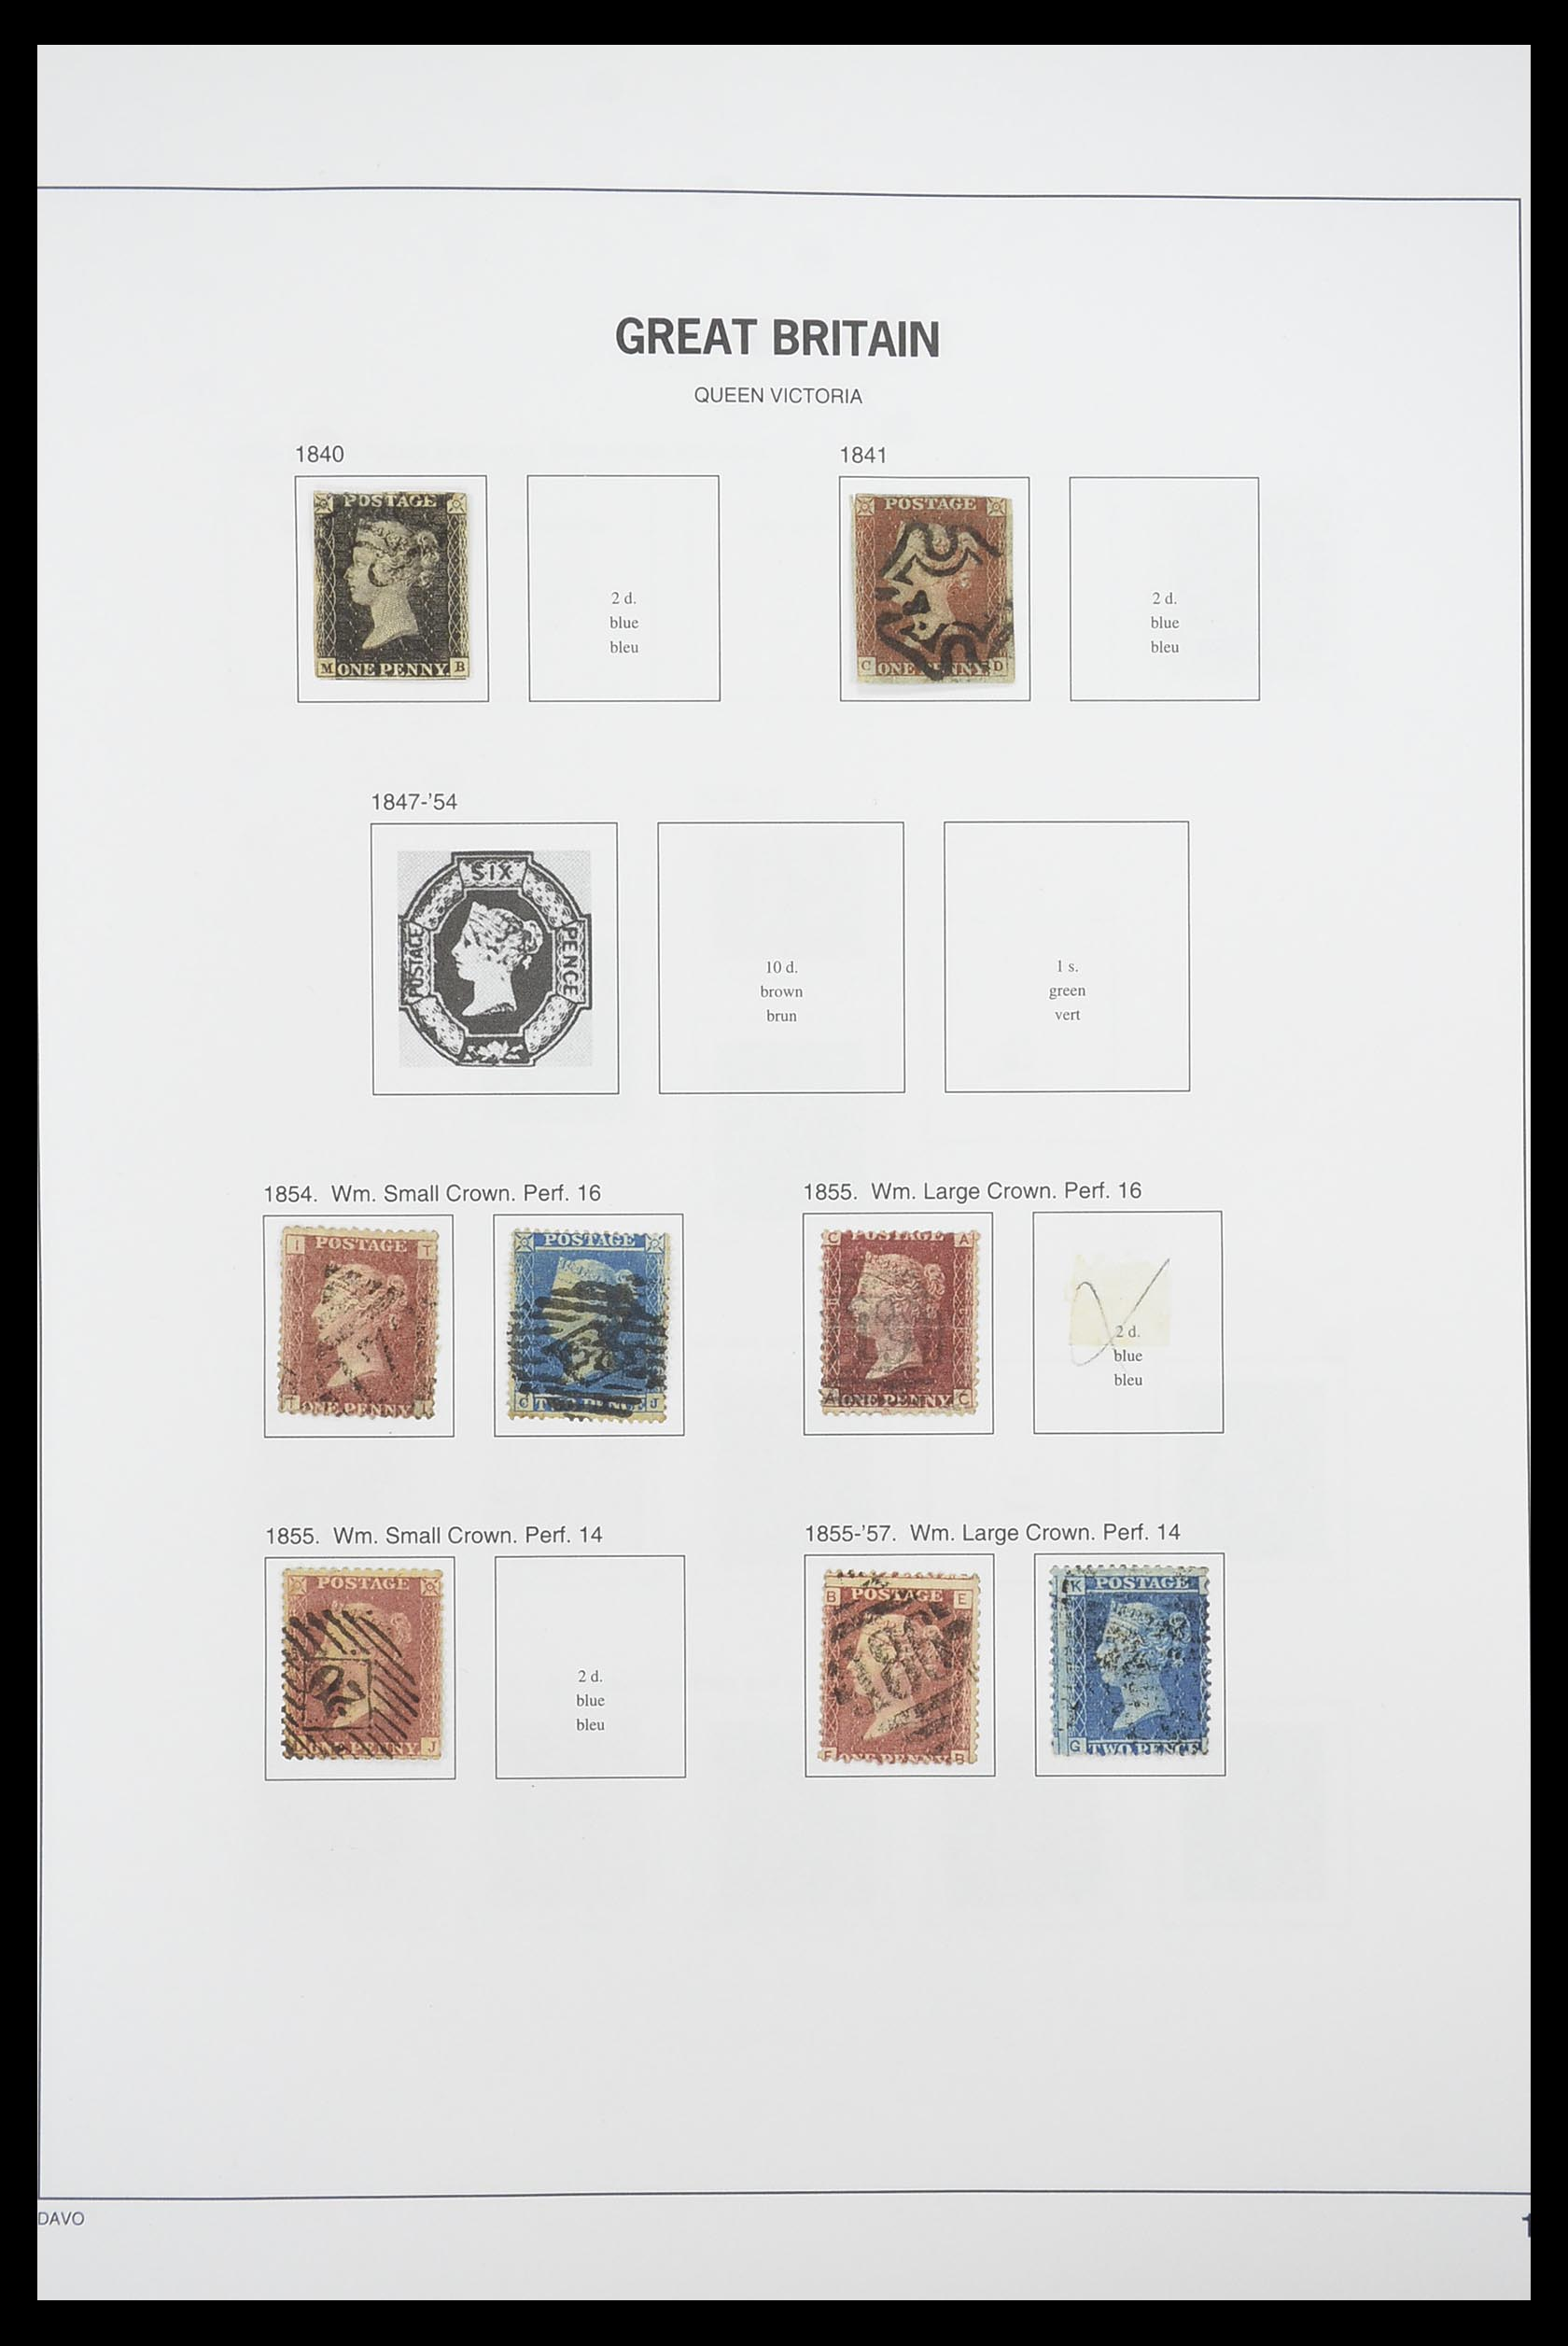 33898 001 - Stamp collection 33898 Great Britain 1840-2006.